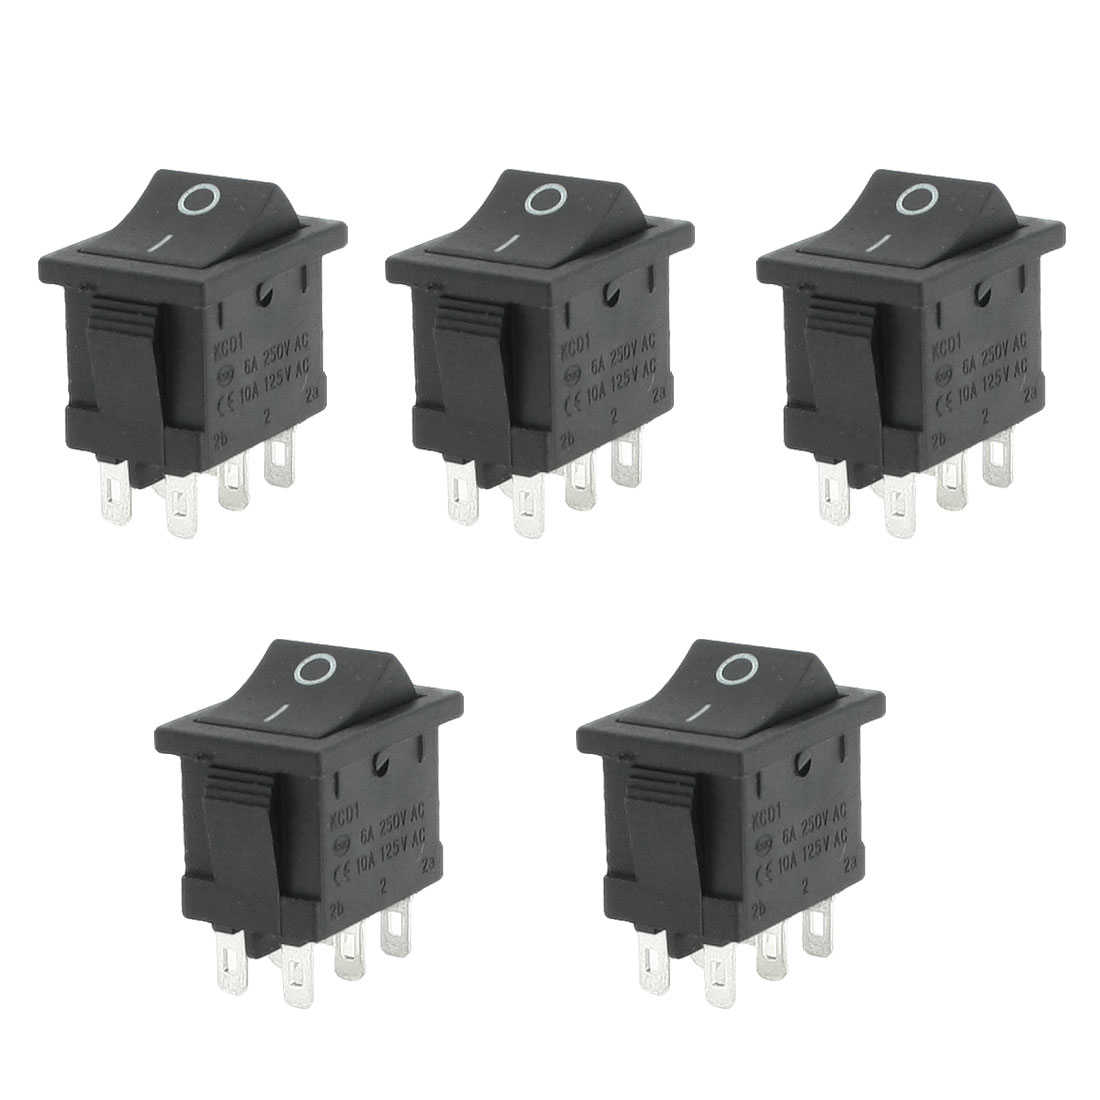 5pcs AC 6A/250V 10A/125V 6 Pin DPDT ON/ON 2 Position Snap in Boat Rocker Switch